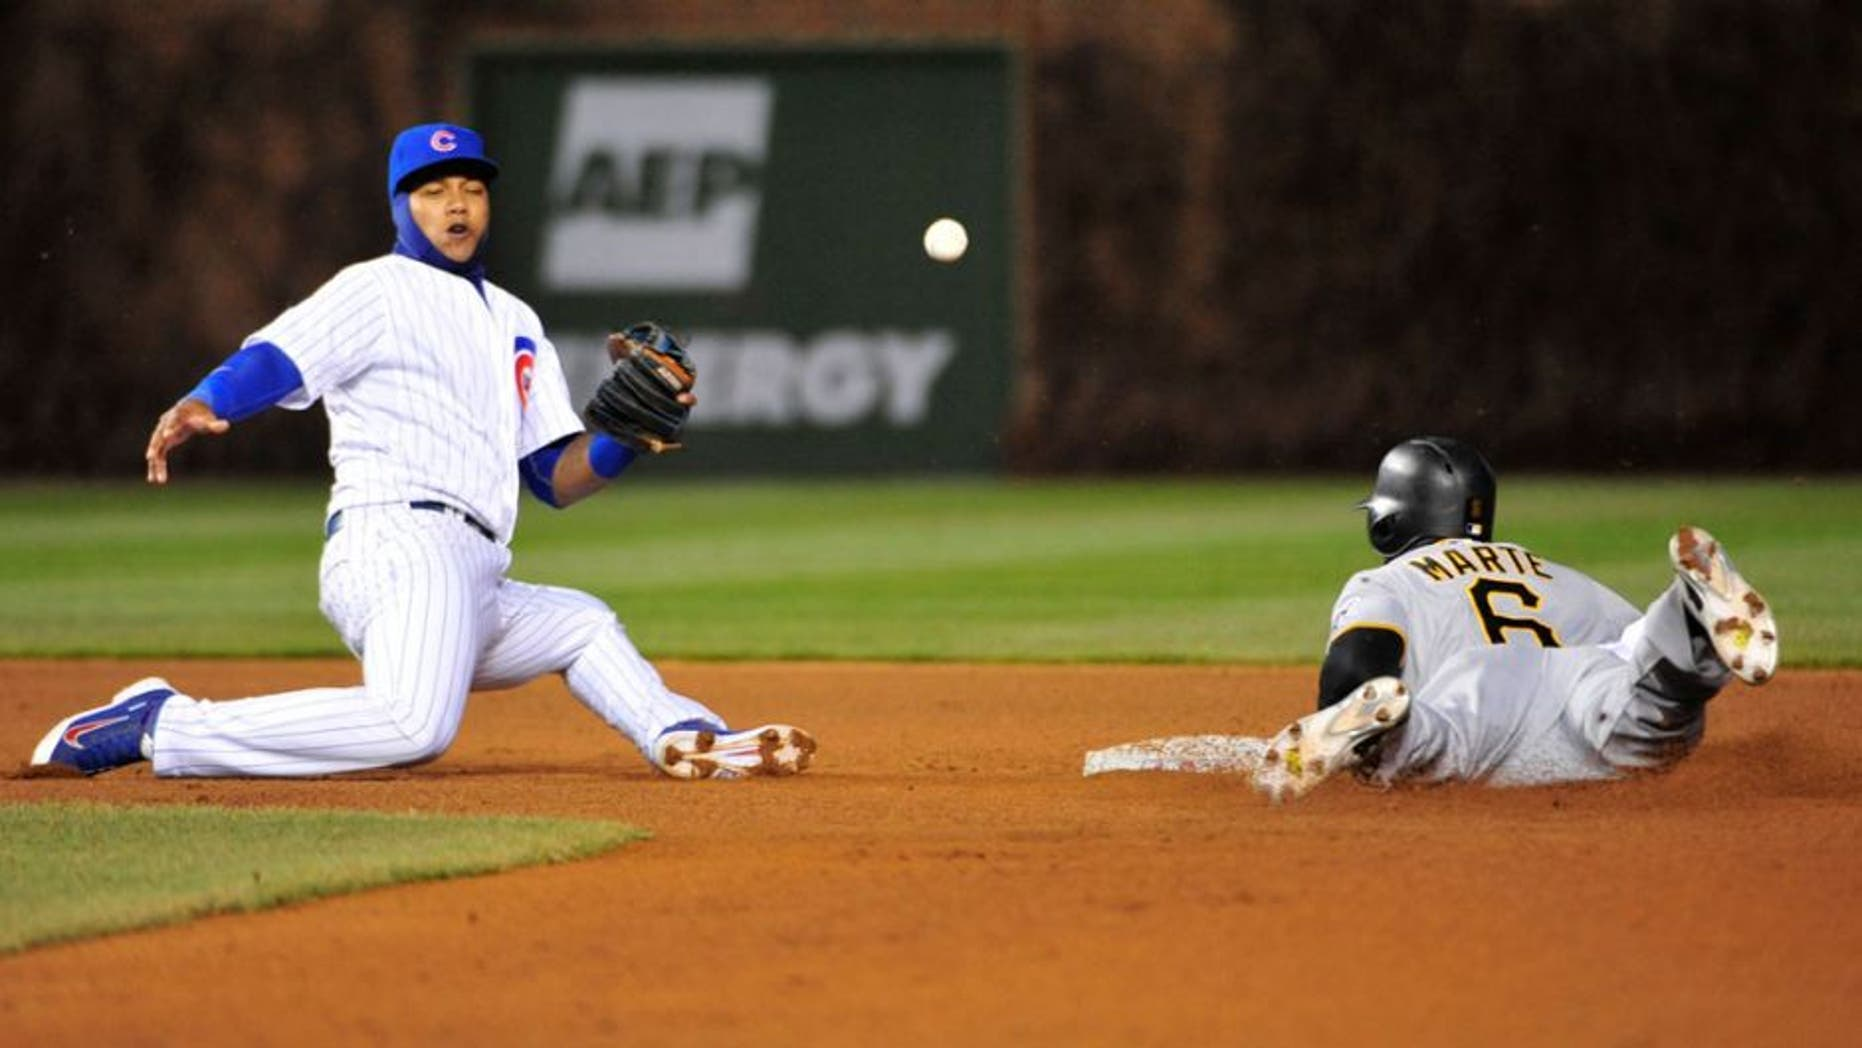 CHICAGO, IL - APRIL 29: Starling Marte #6 of the Pittsburgh Pirates steals second base as Starlin Castro #13 of the Chicago Cubs can't handle the throw during the fourth inning on April 29, 2015 at Wrigley Field in Chicago, Illinois. (Photo by David Banks/Getty Images)